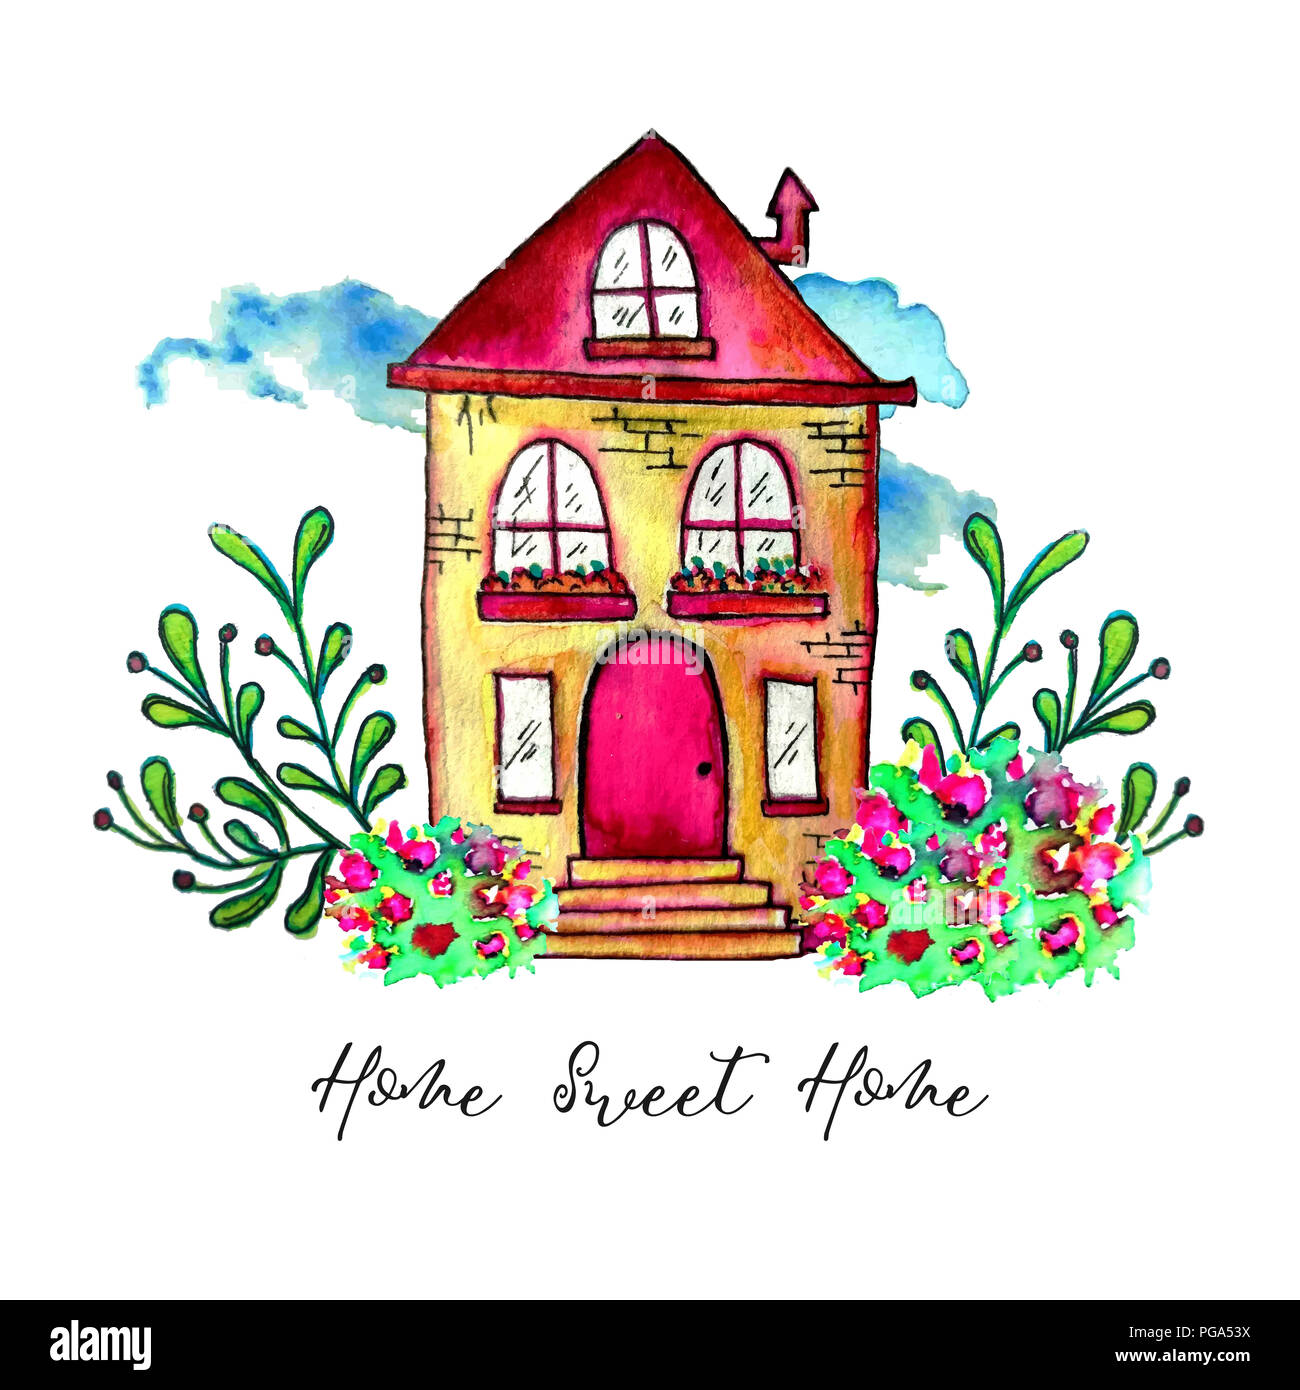 Sweet home label. Cute watercolor old building with branches and herbs isolated on white background. Hand painted card with happy house and flowers. - Stock Image